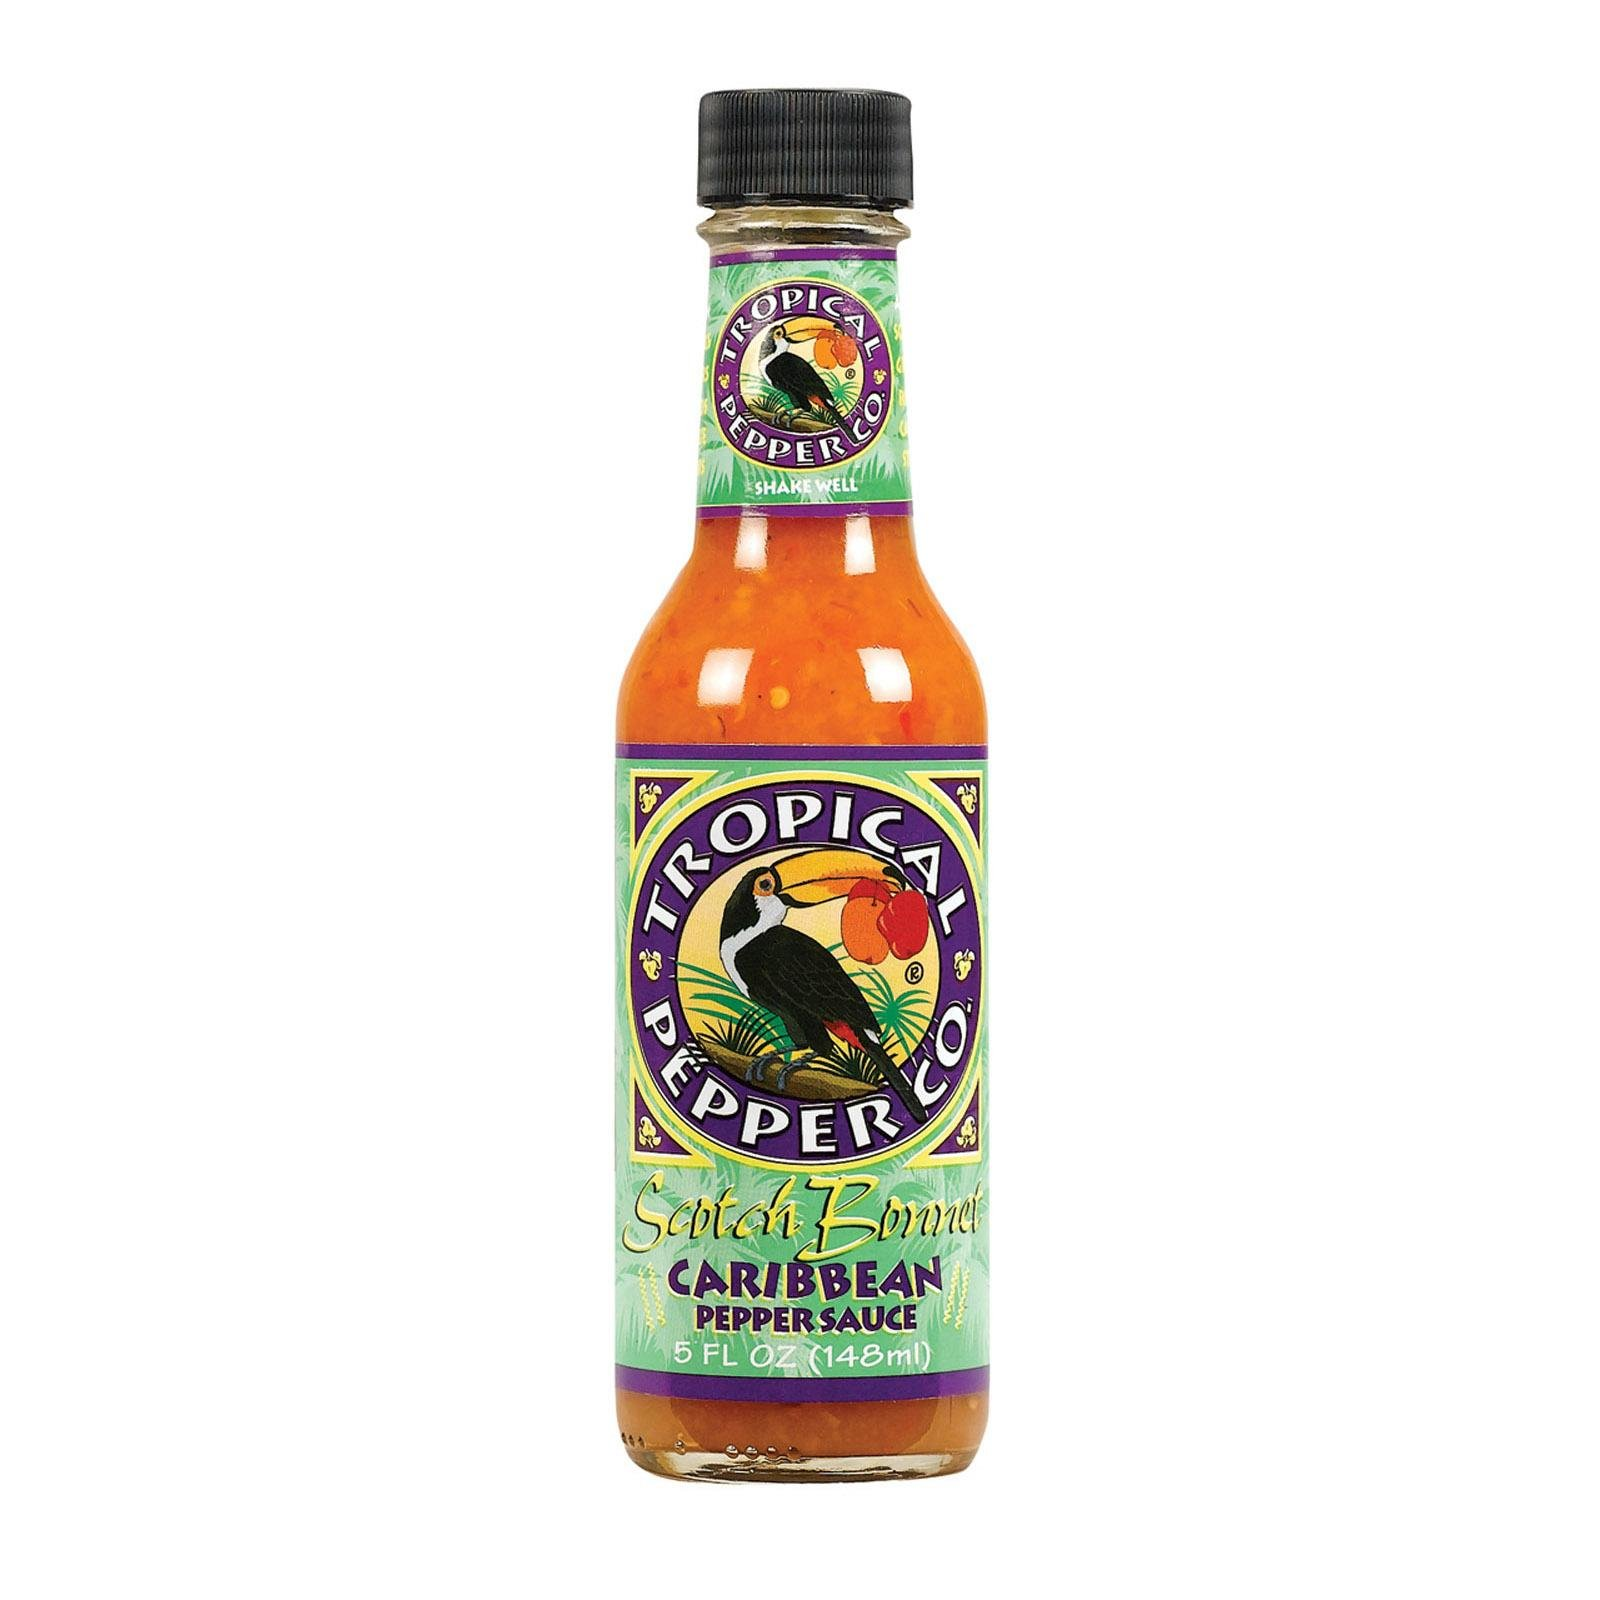 TROPICAL PEPPER, Sauce, Scotch Bonnet, Pack of 12, Size 5 FZ, (Dairy Free Kosher Vegan)